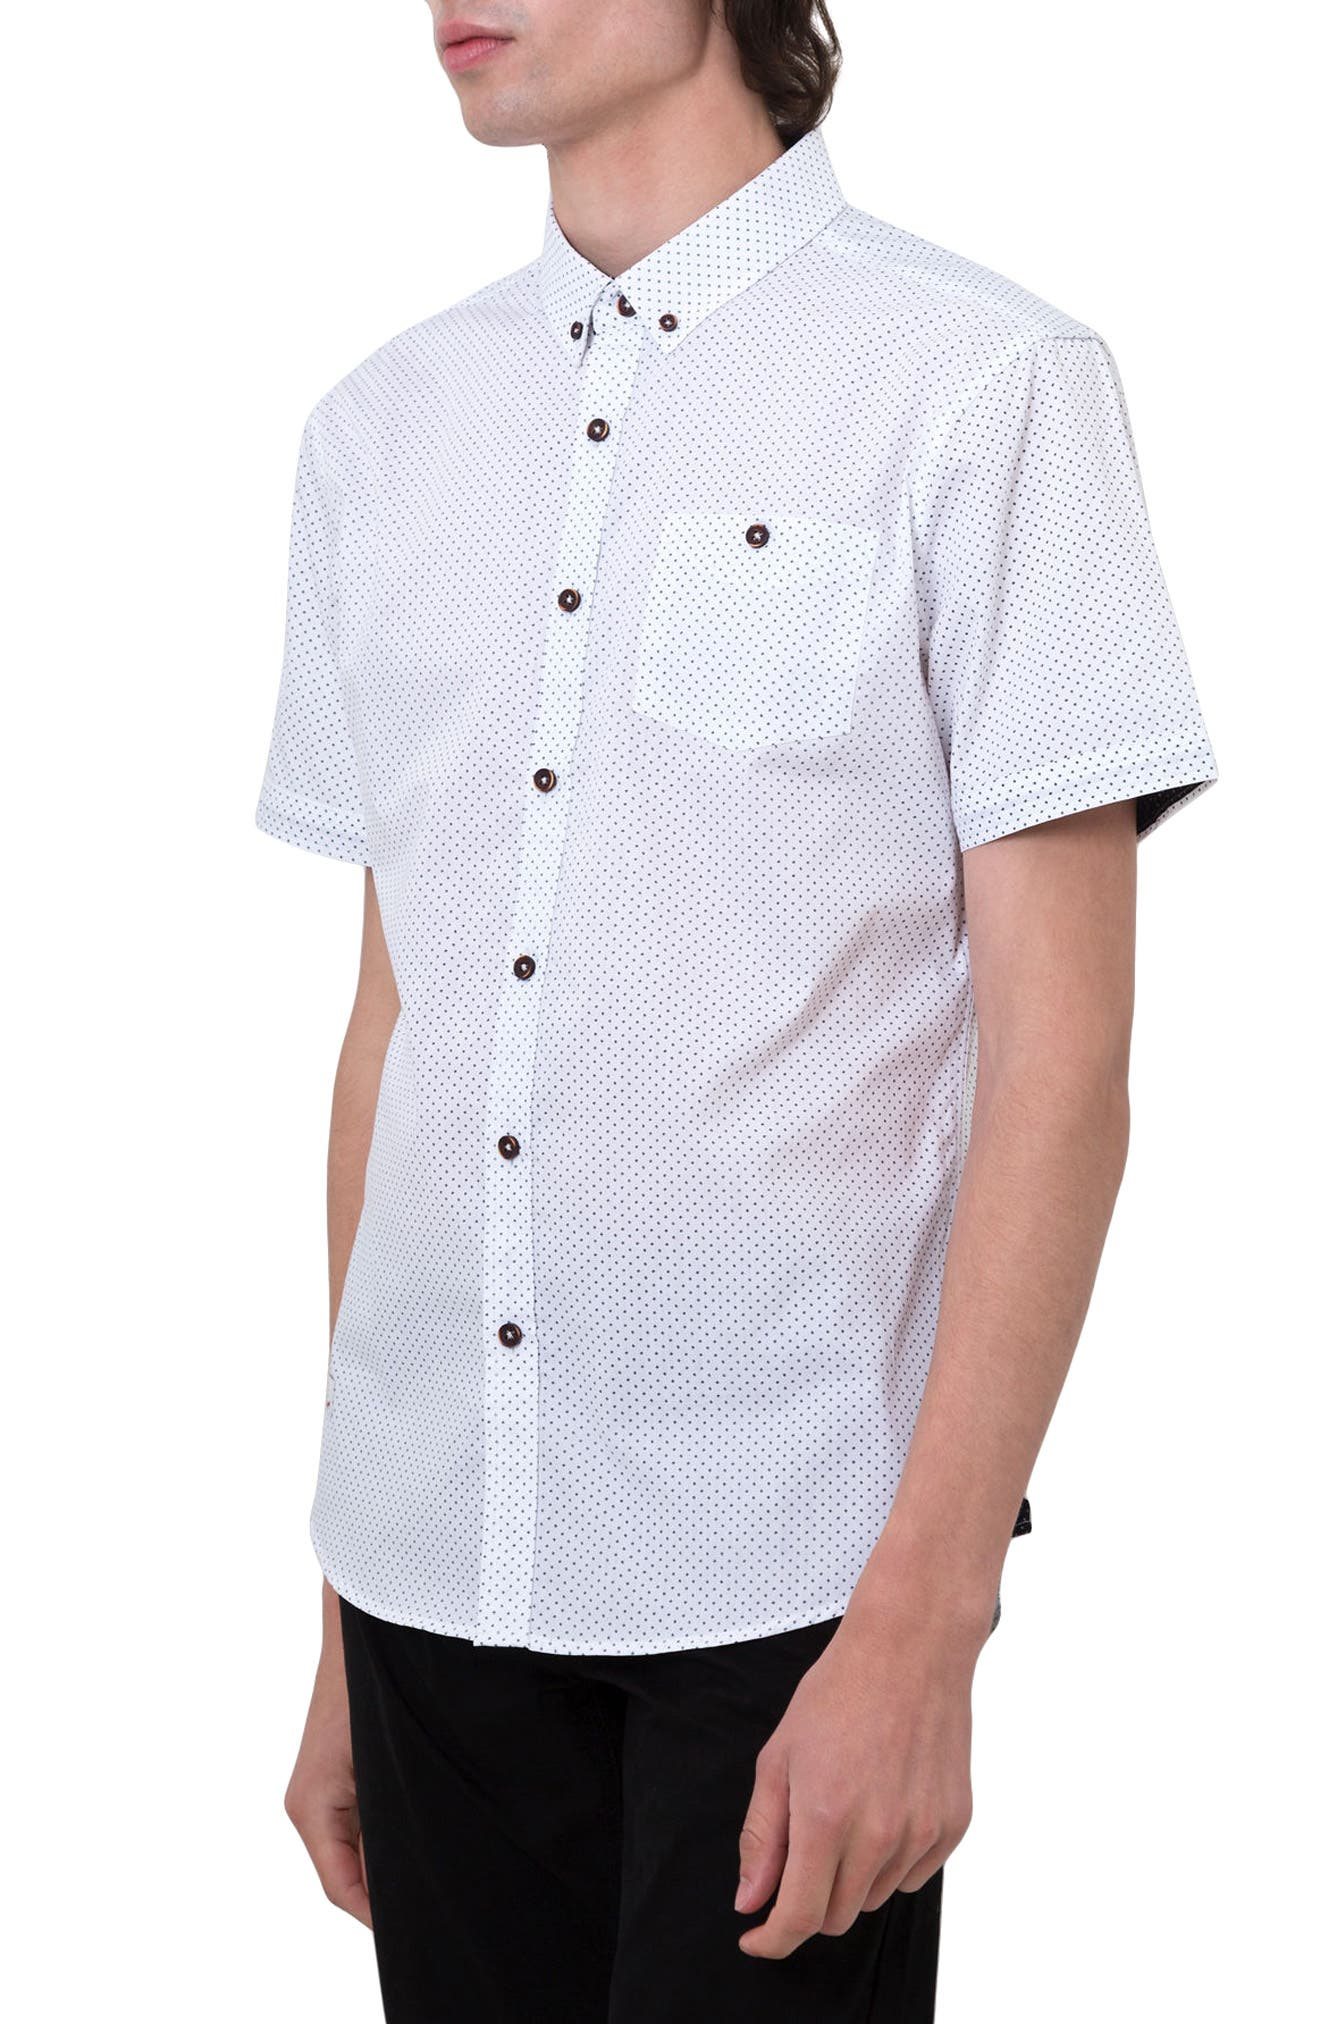 Move On Microprint Woven Shirt,                             Alternate thumbnail 3, color,                             White